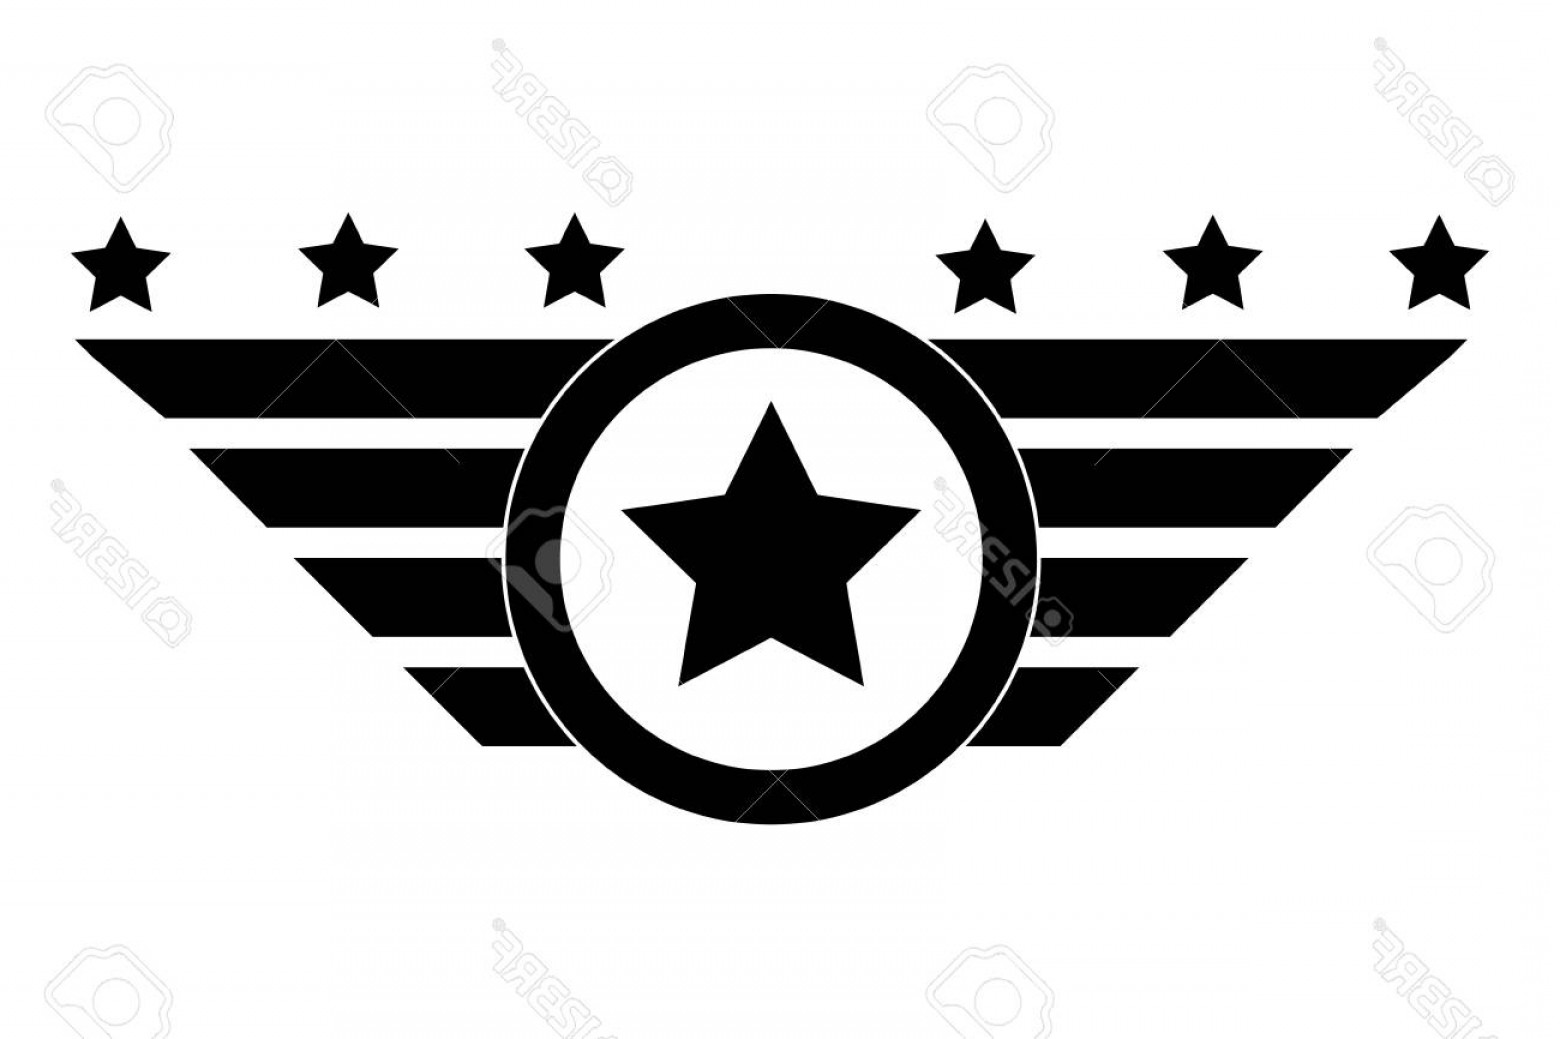 United States Armed Forces Logo Vector: Photostock Vector Isolated Black And White Emblem Concept Of Insignia Army Forces Patriotic And American Vector Illust